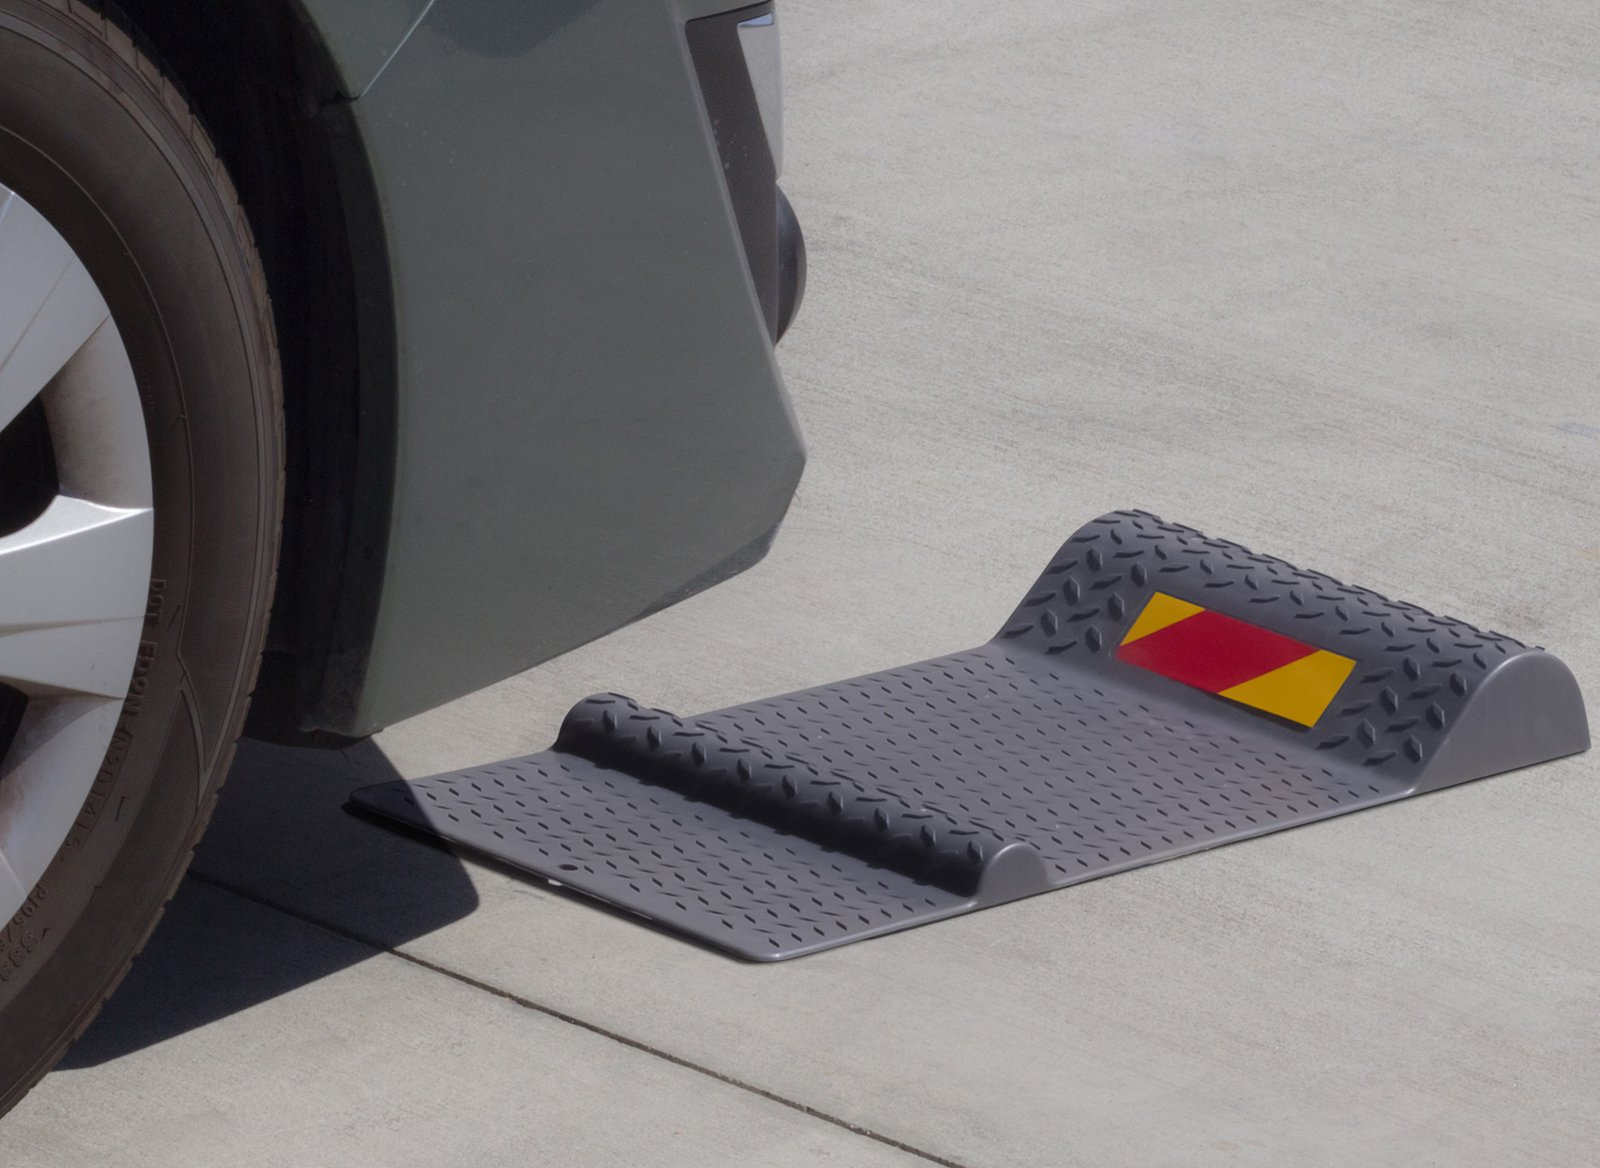 Parking Assistant for Garage Assist - Park Aid Floor Mats Car Accessories Best for Flooring Mat Sensor Stop Indicator - Stopper Liner Distance Parallel Guardian Stand Aids Cars Guide Stops Vehicles by OxGord (Image #3)